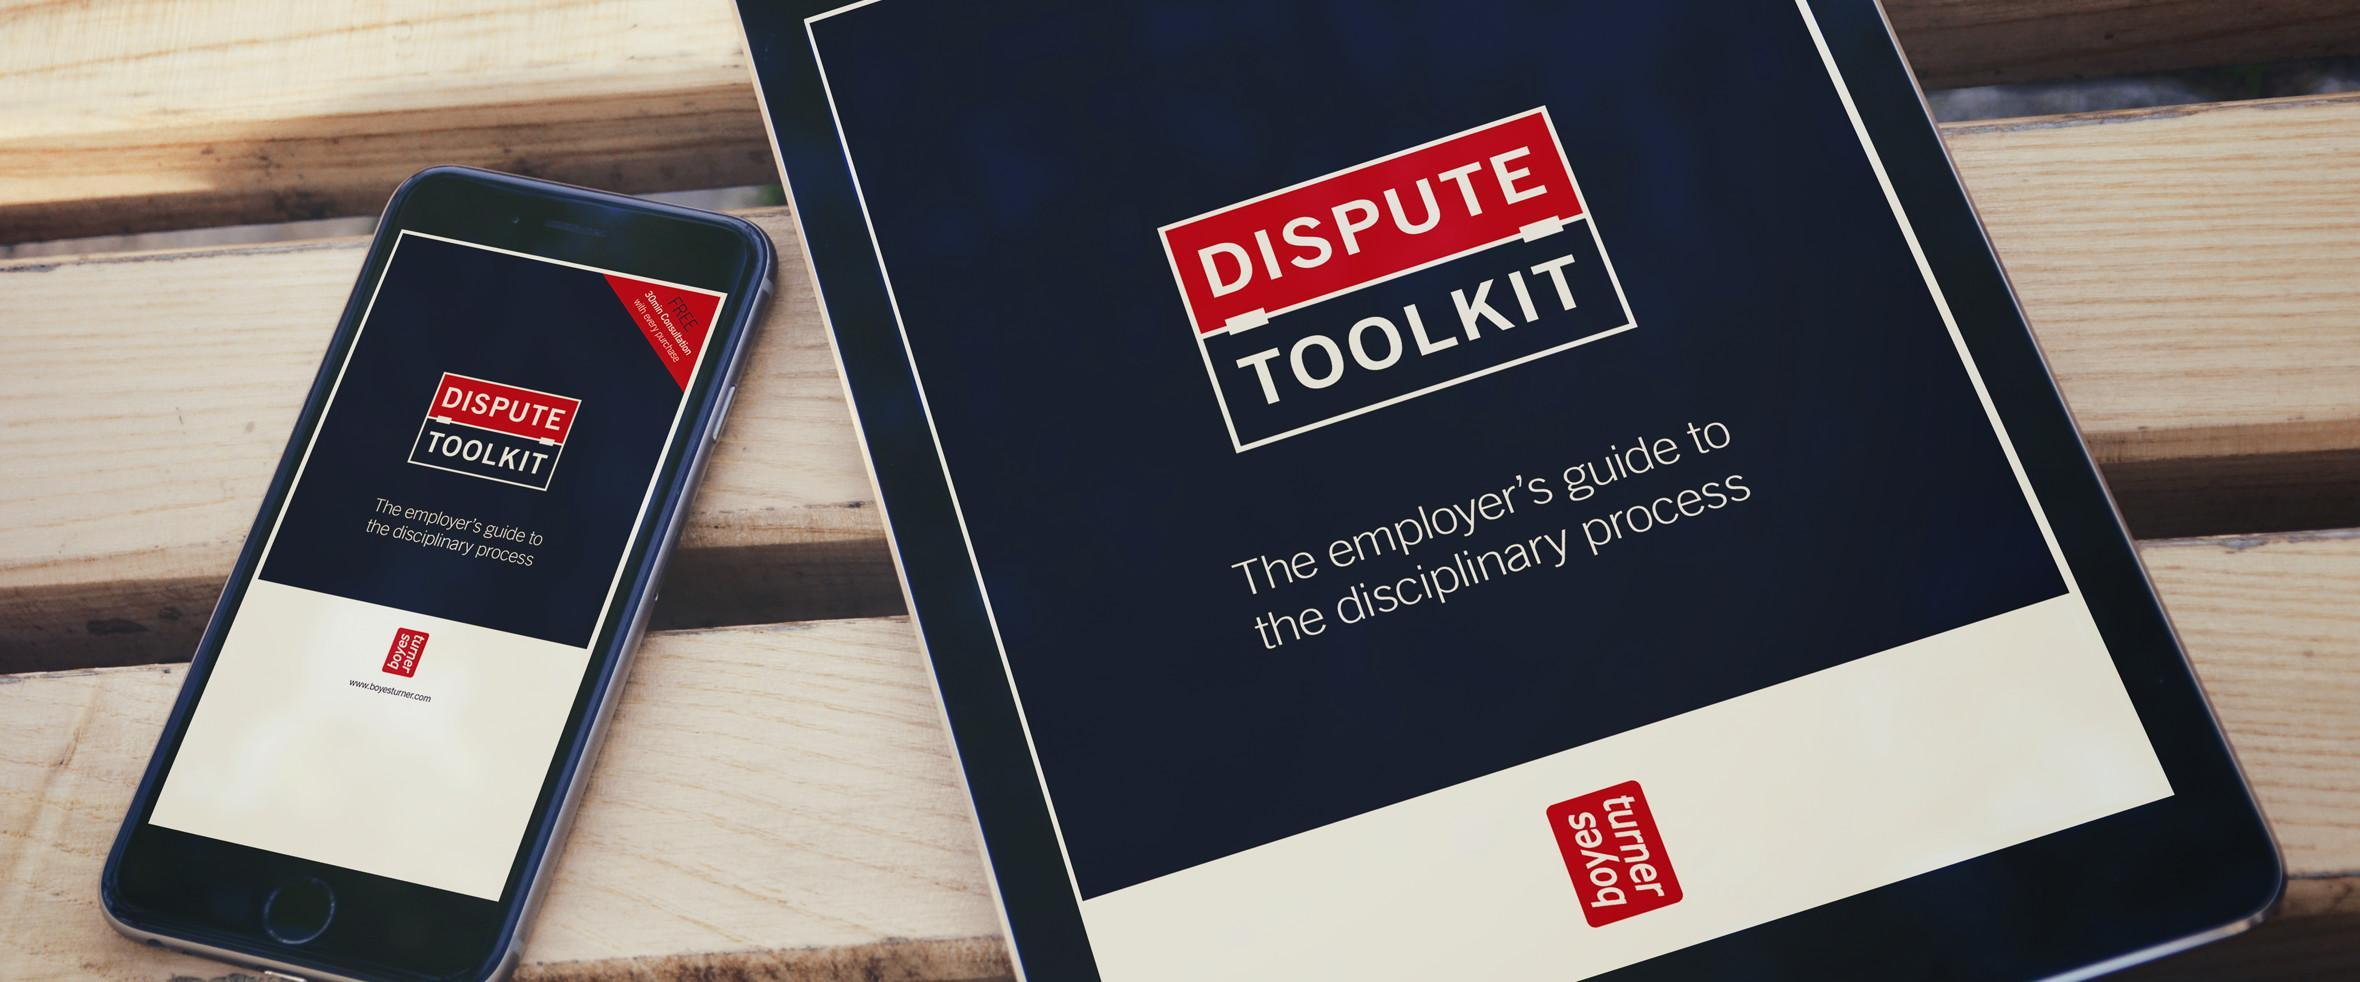 The Dispute Toolkit ebook from Boyes Turner